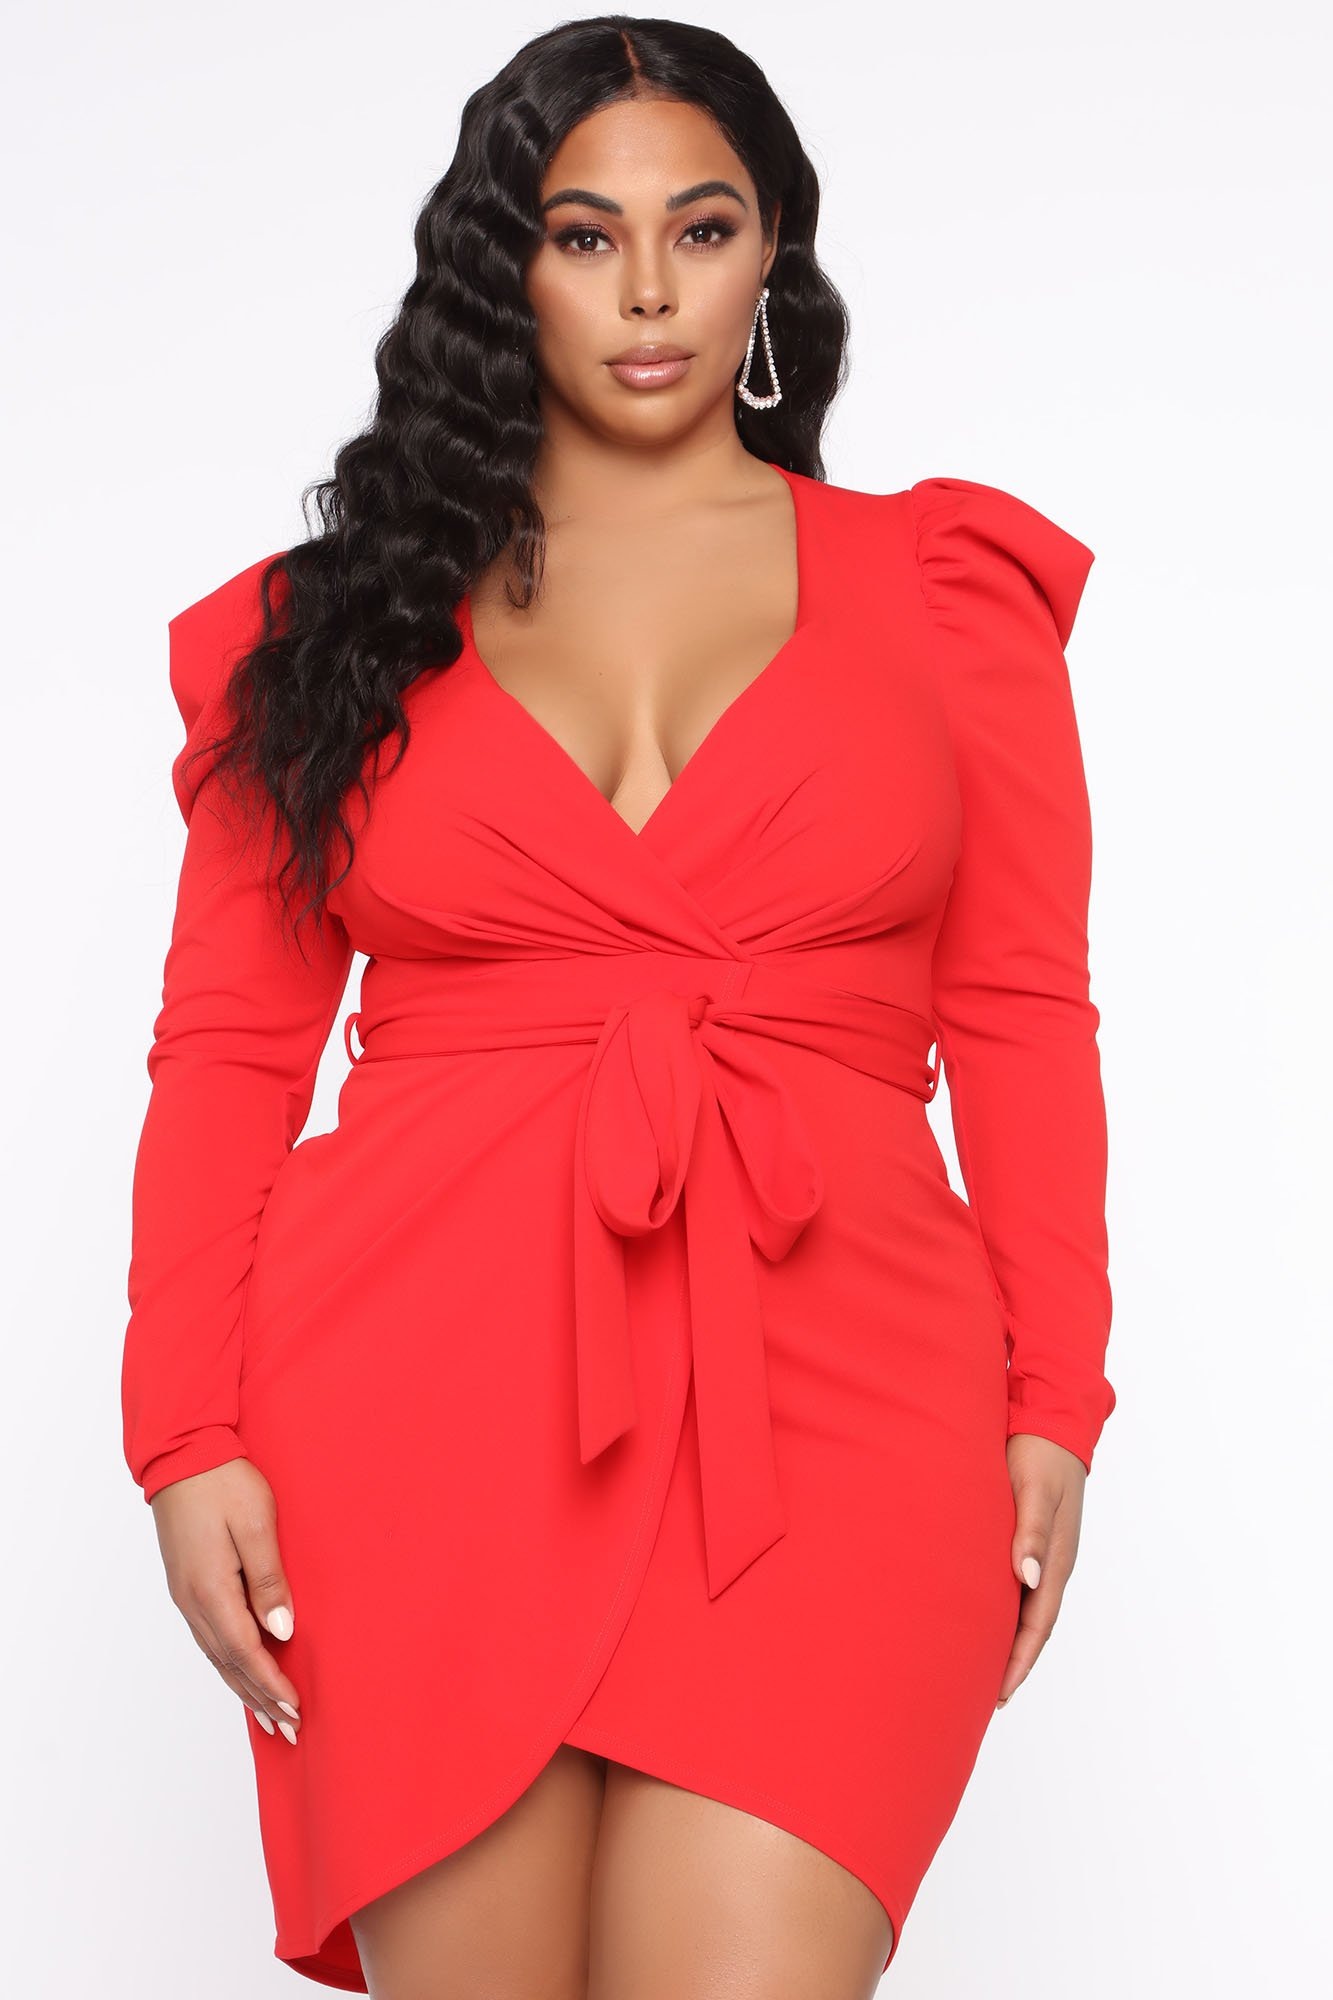 Robe courte Owning This Moment - Rouge - Grandes tailles